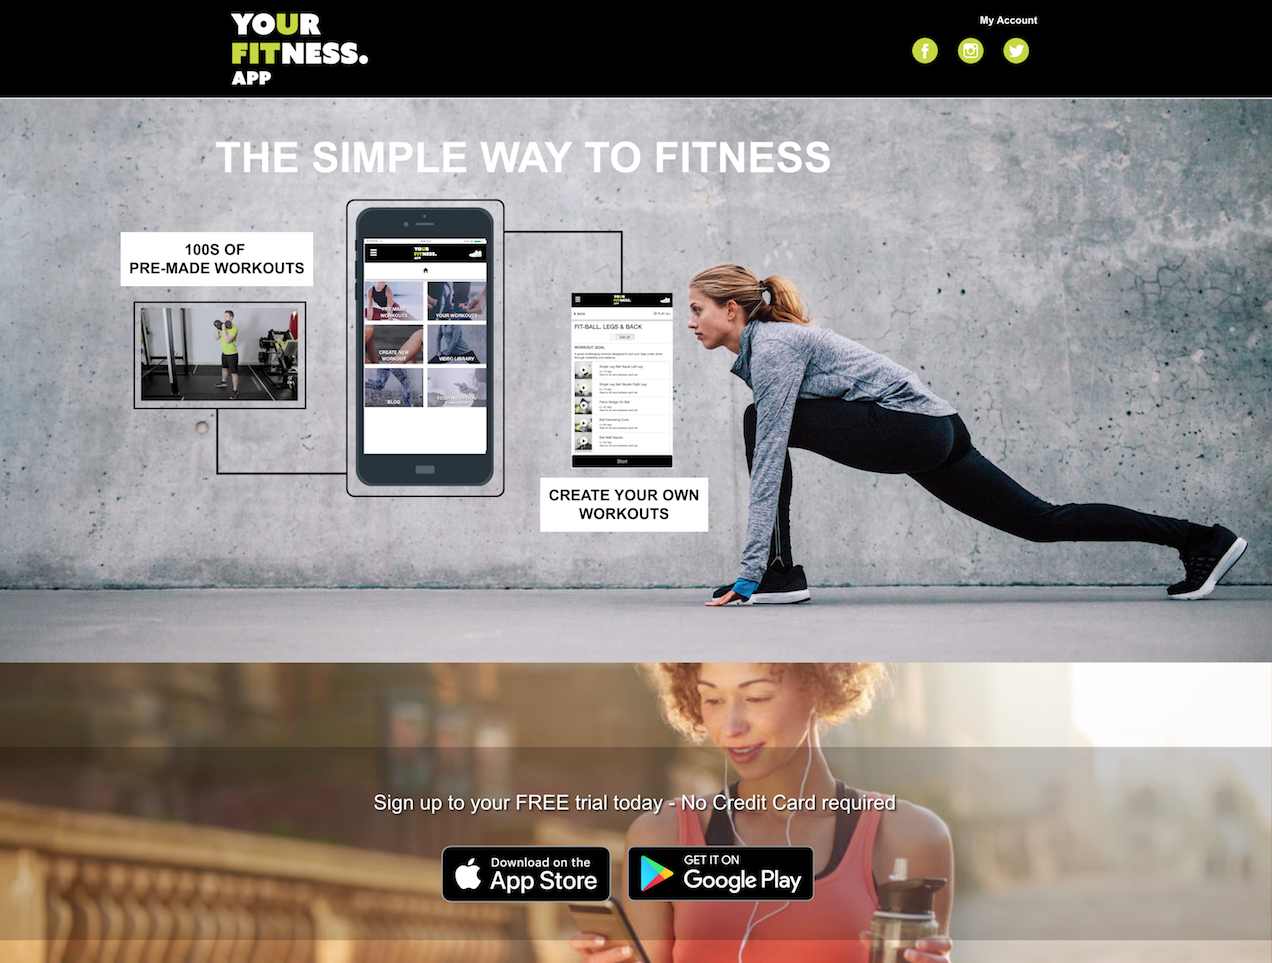 Your Fitness App - The Simple Way To Fitness